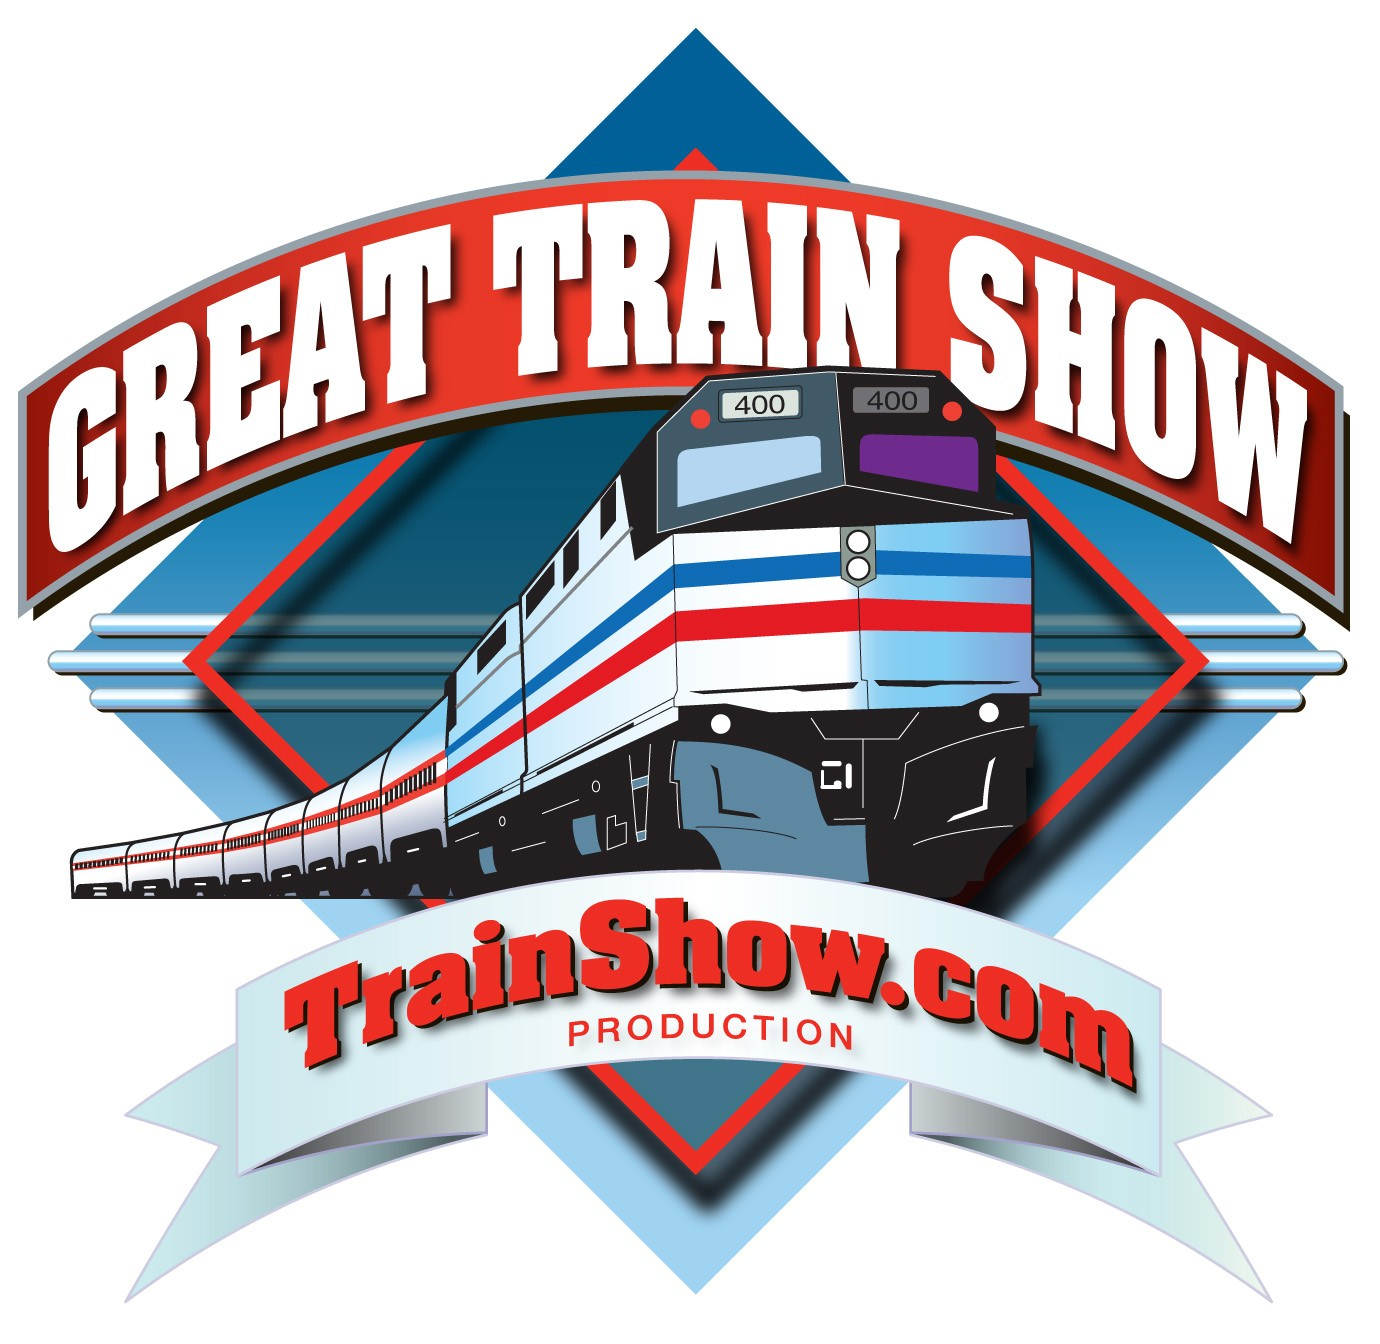 Great Train Show at Washington State Fair Events Center in.